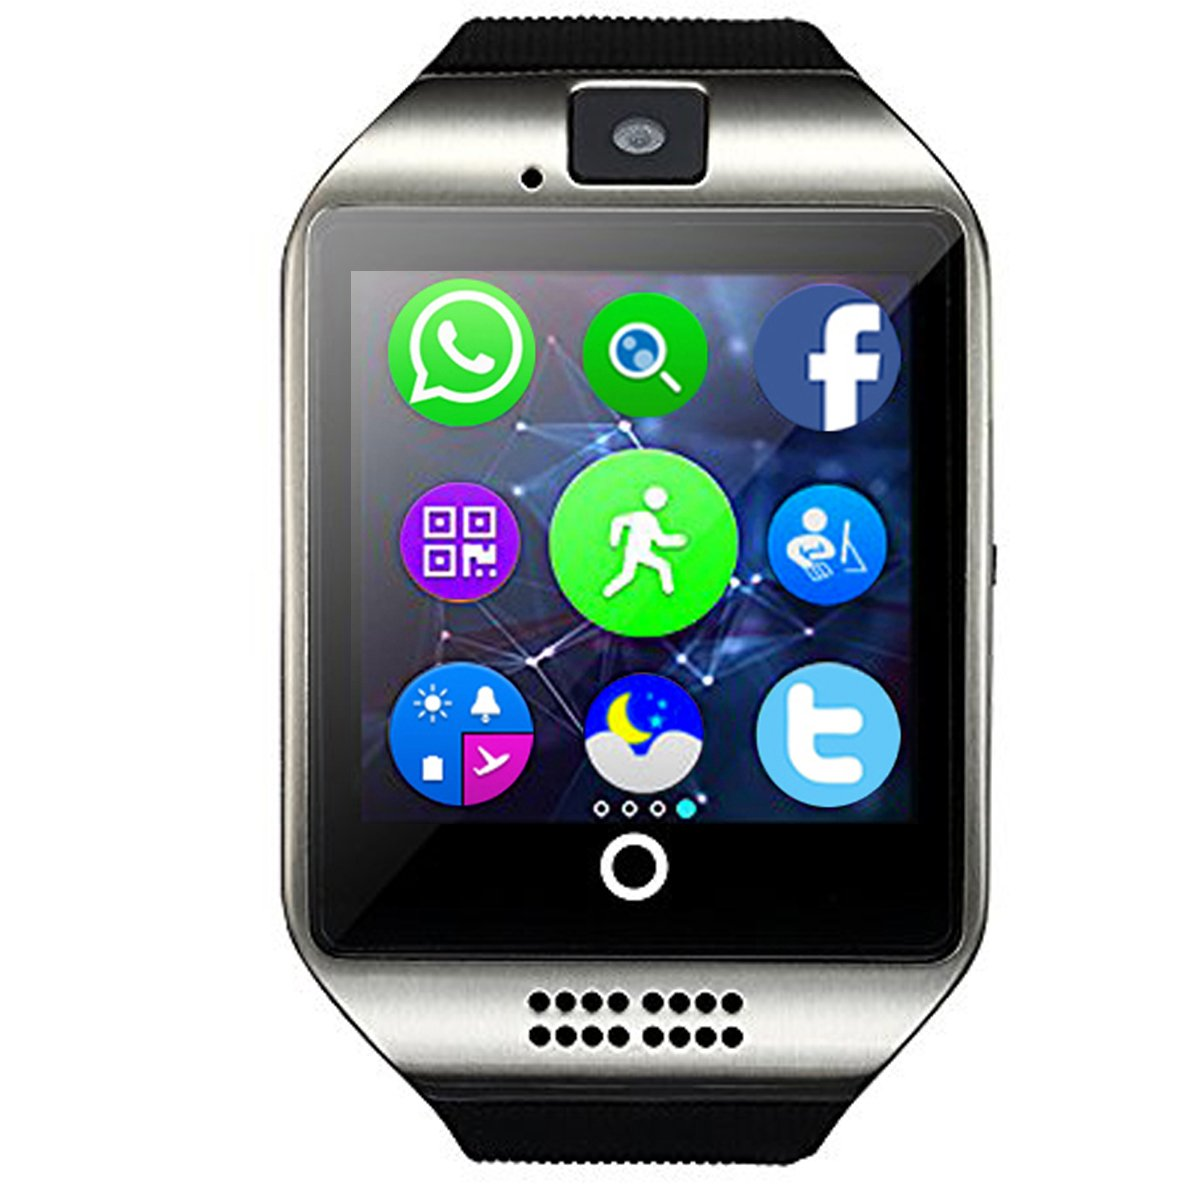 Smart Watch,YOKEYS Touch Screen Bluetooth WristWatch Fitness Watch with Camera SIM Card Slot/ analysis/Sleep Monitoring for Android (Full Functions) and IOS (Partial Functions) Men Women (Q Silver)